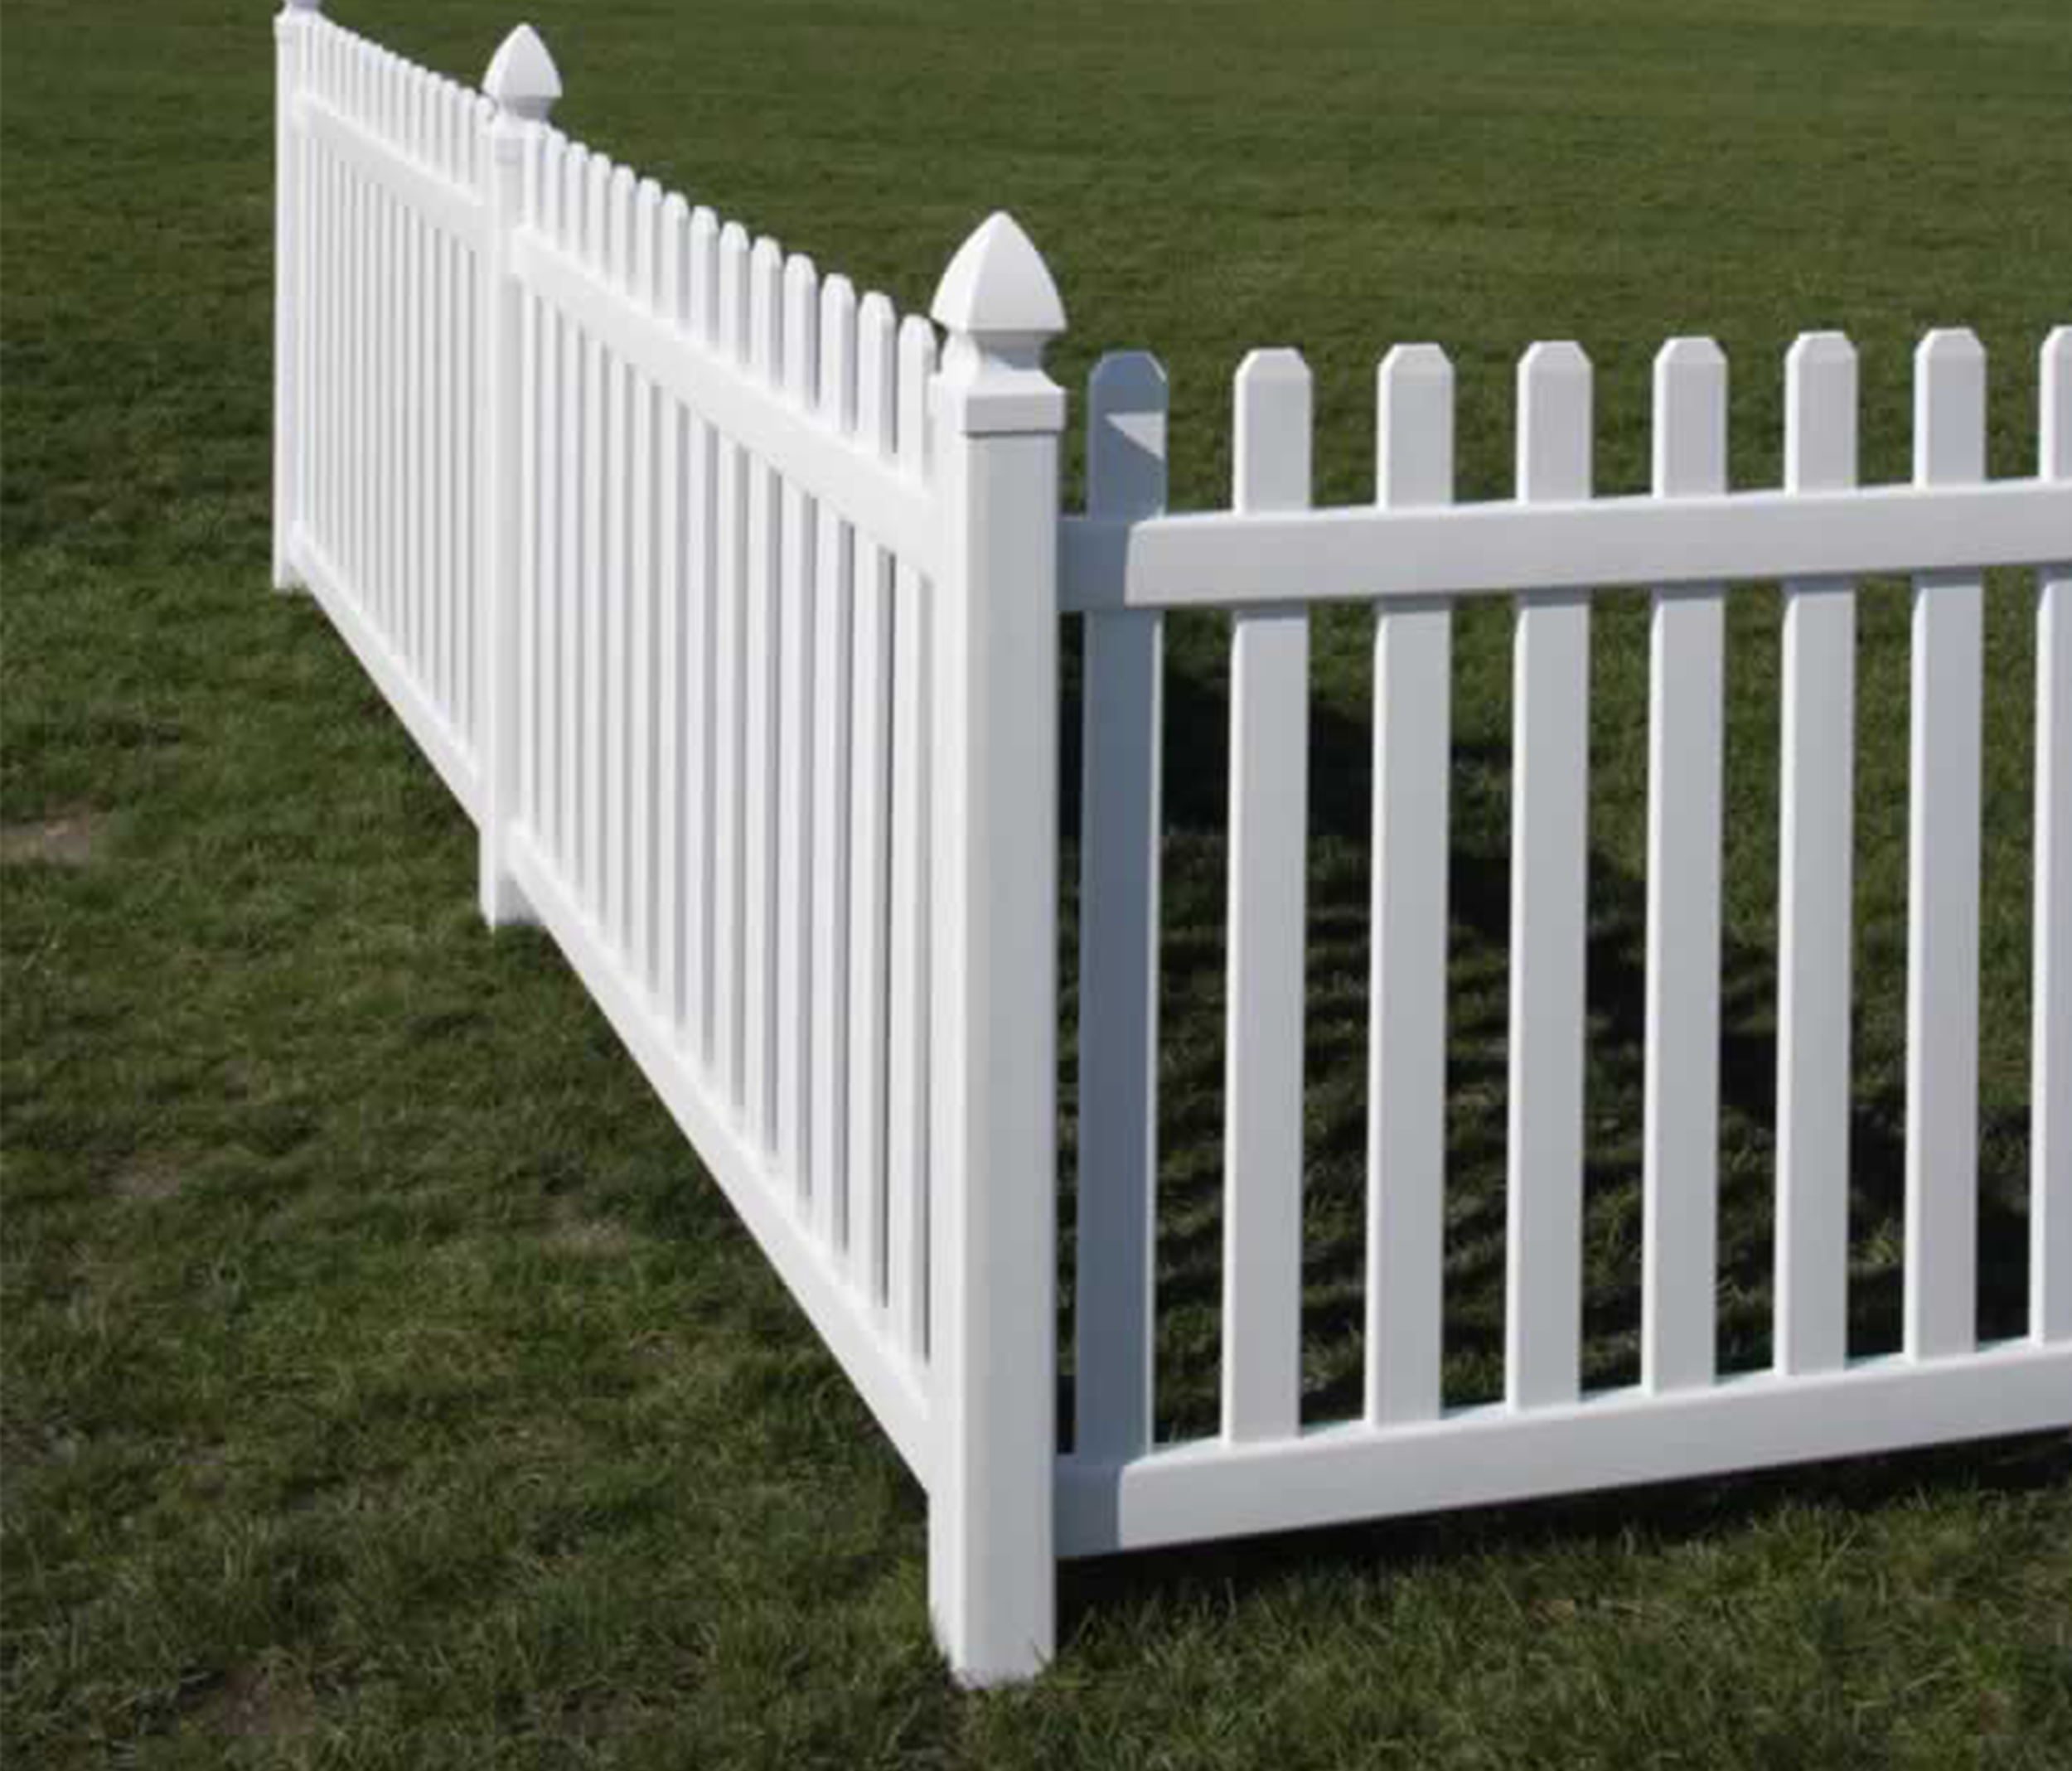 fence.png